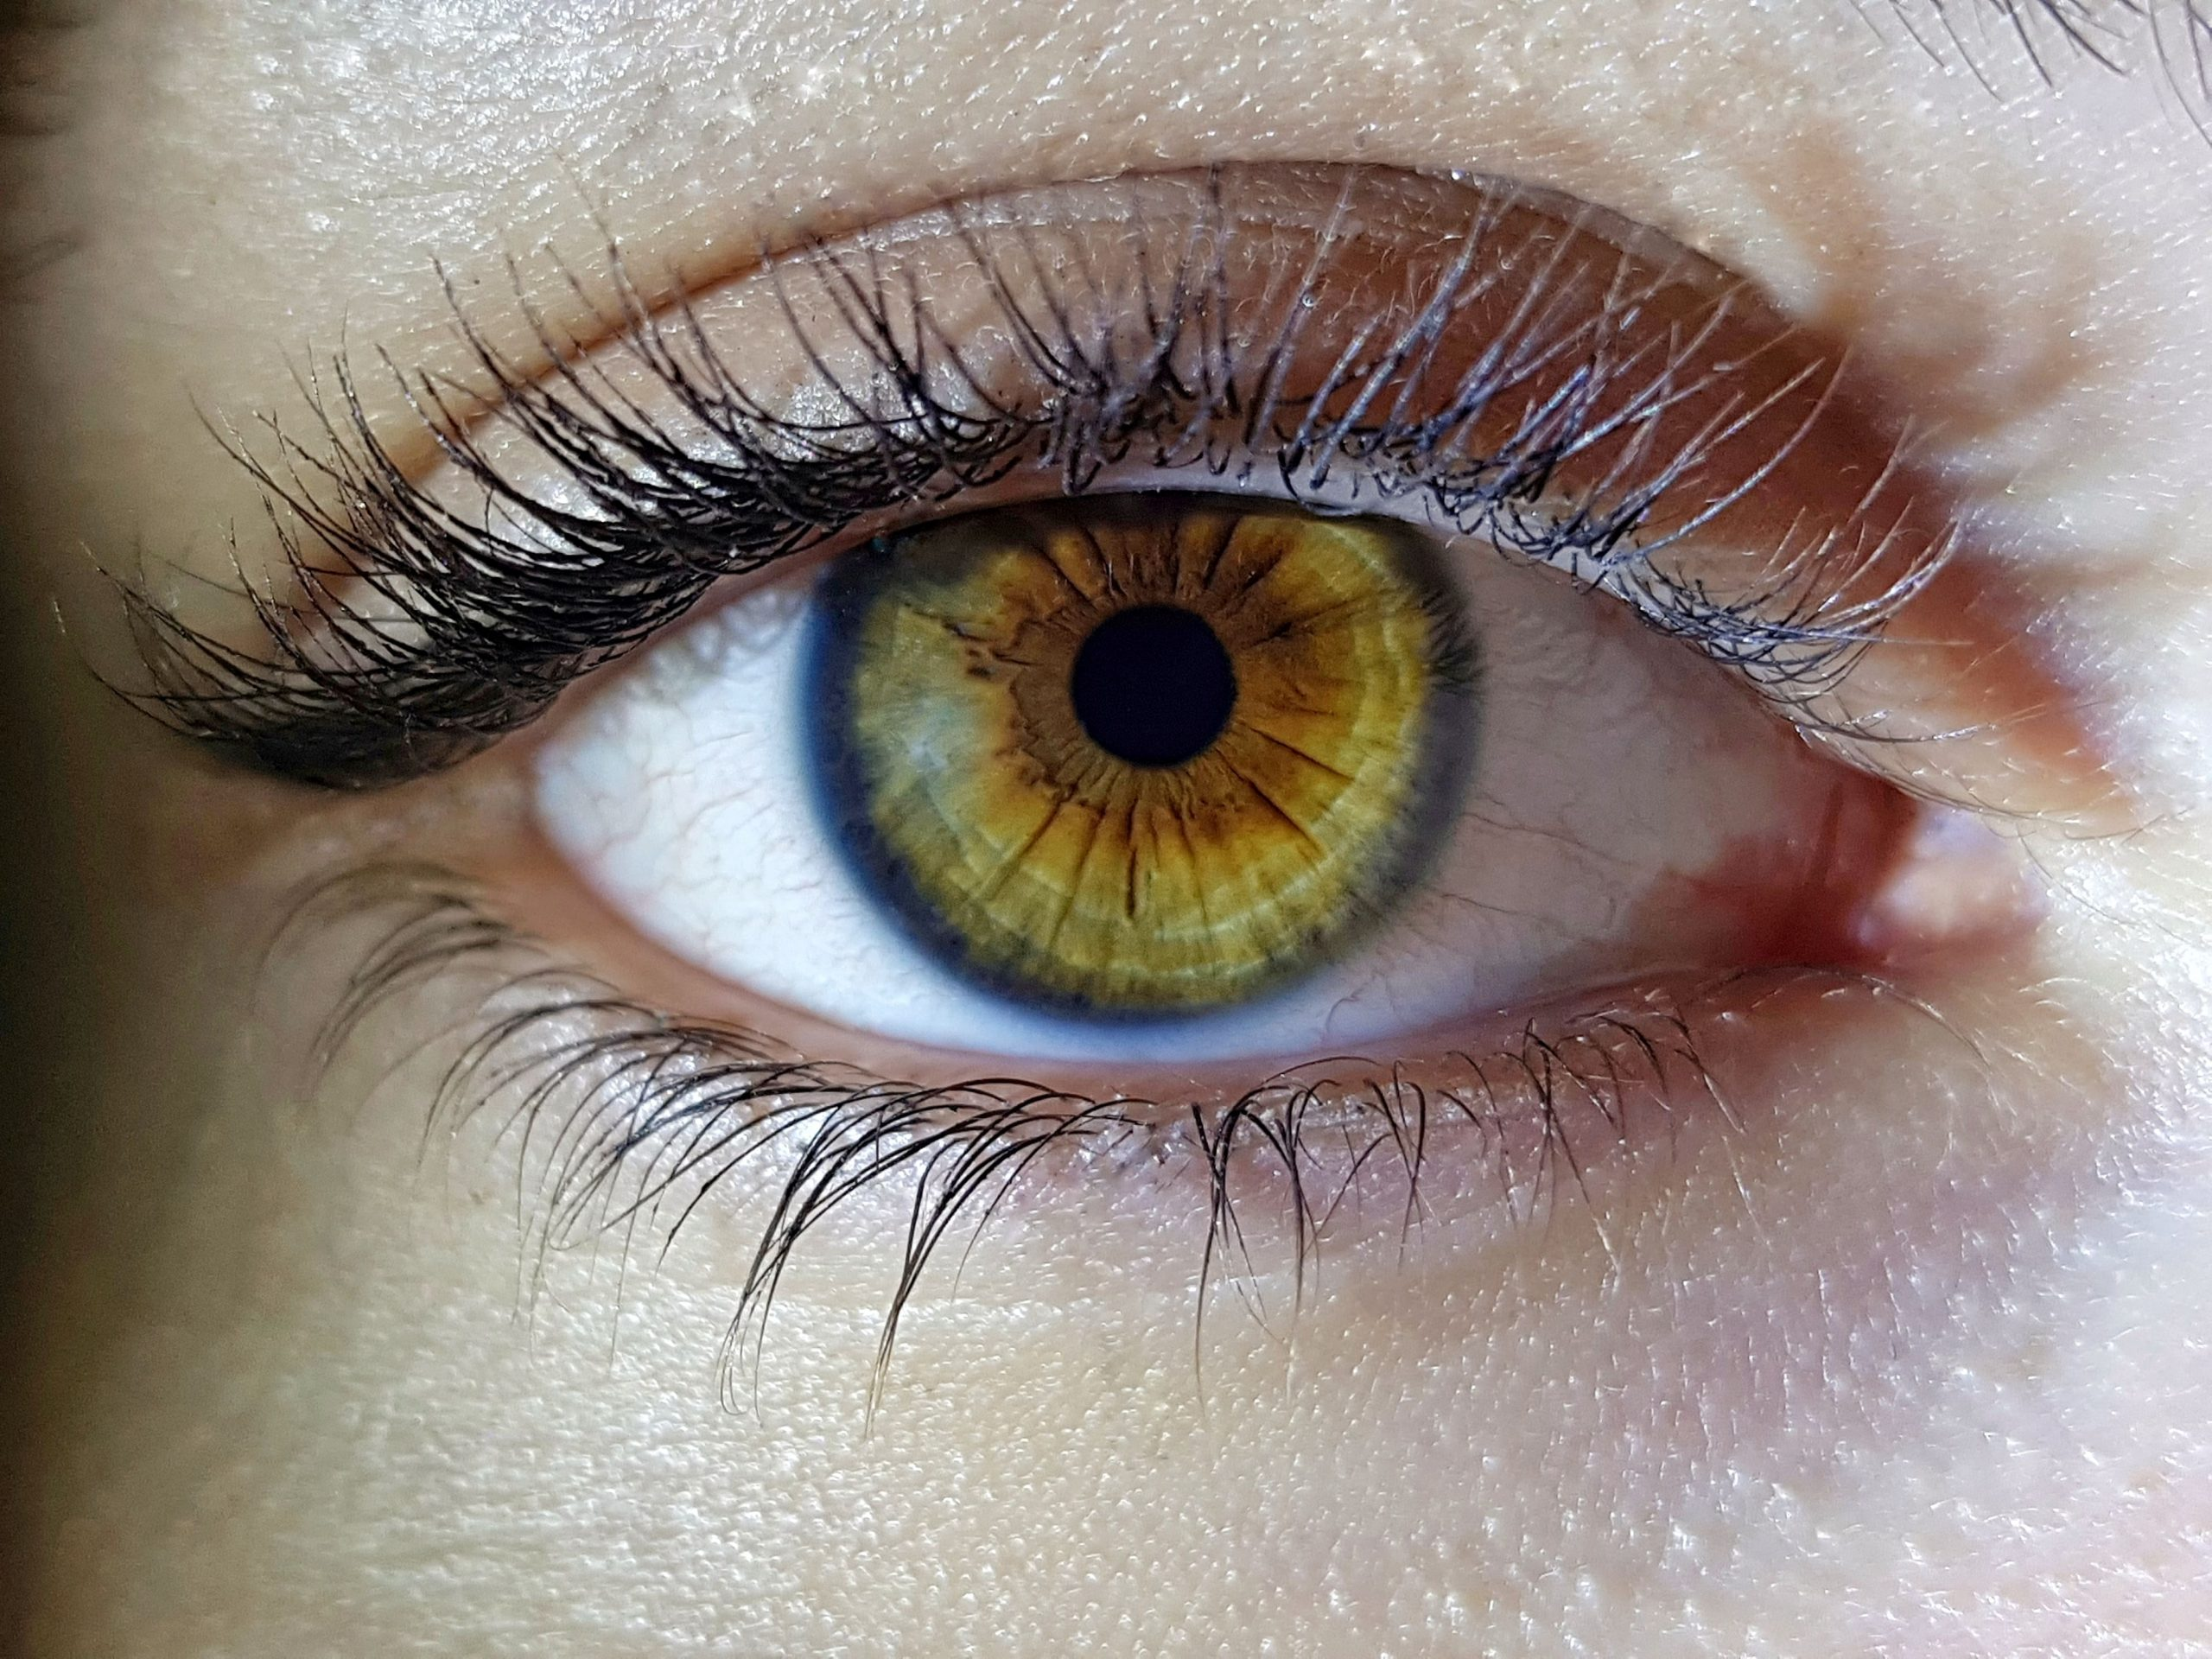 Diabetic retinopathy can cause blindness